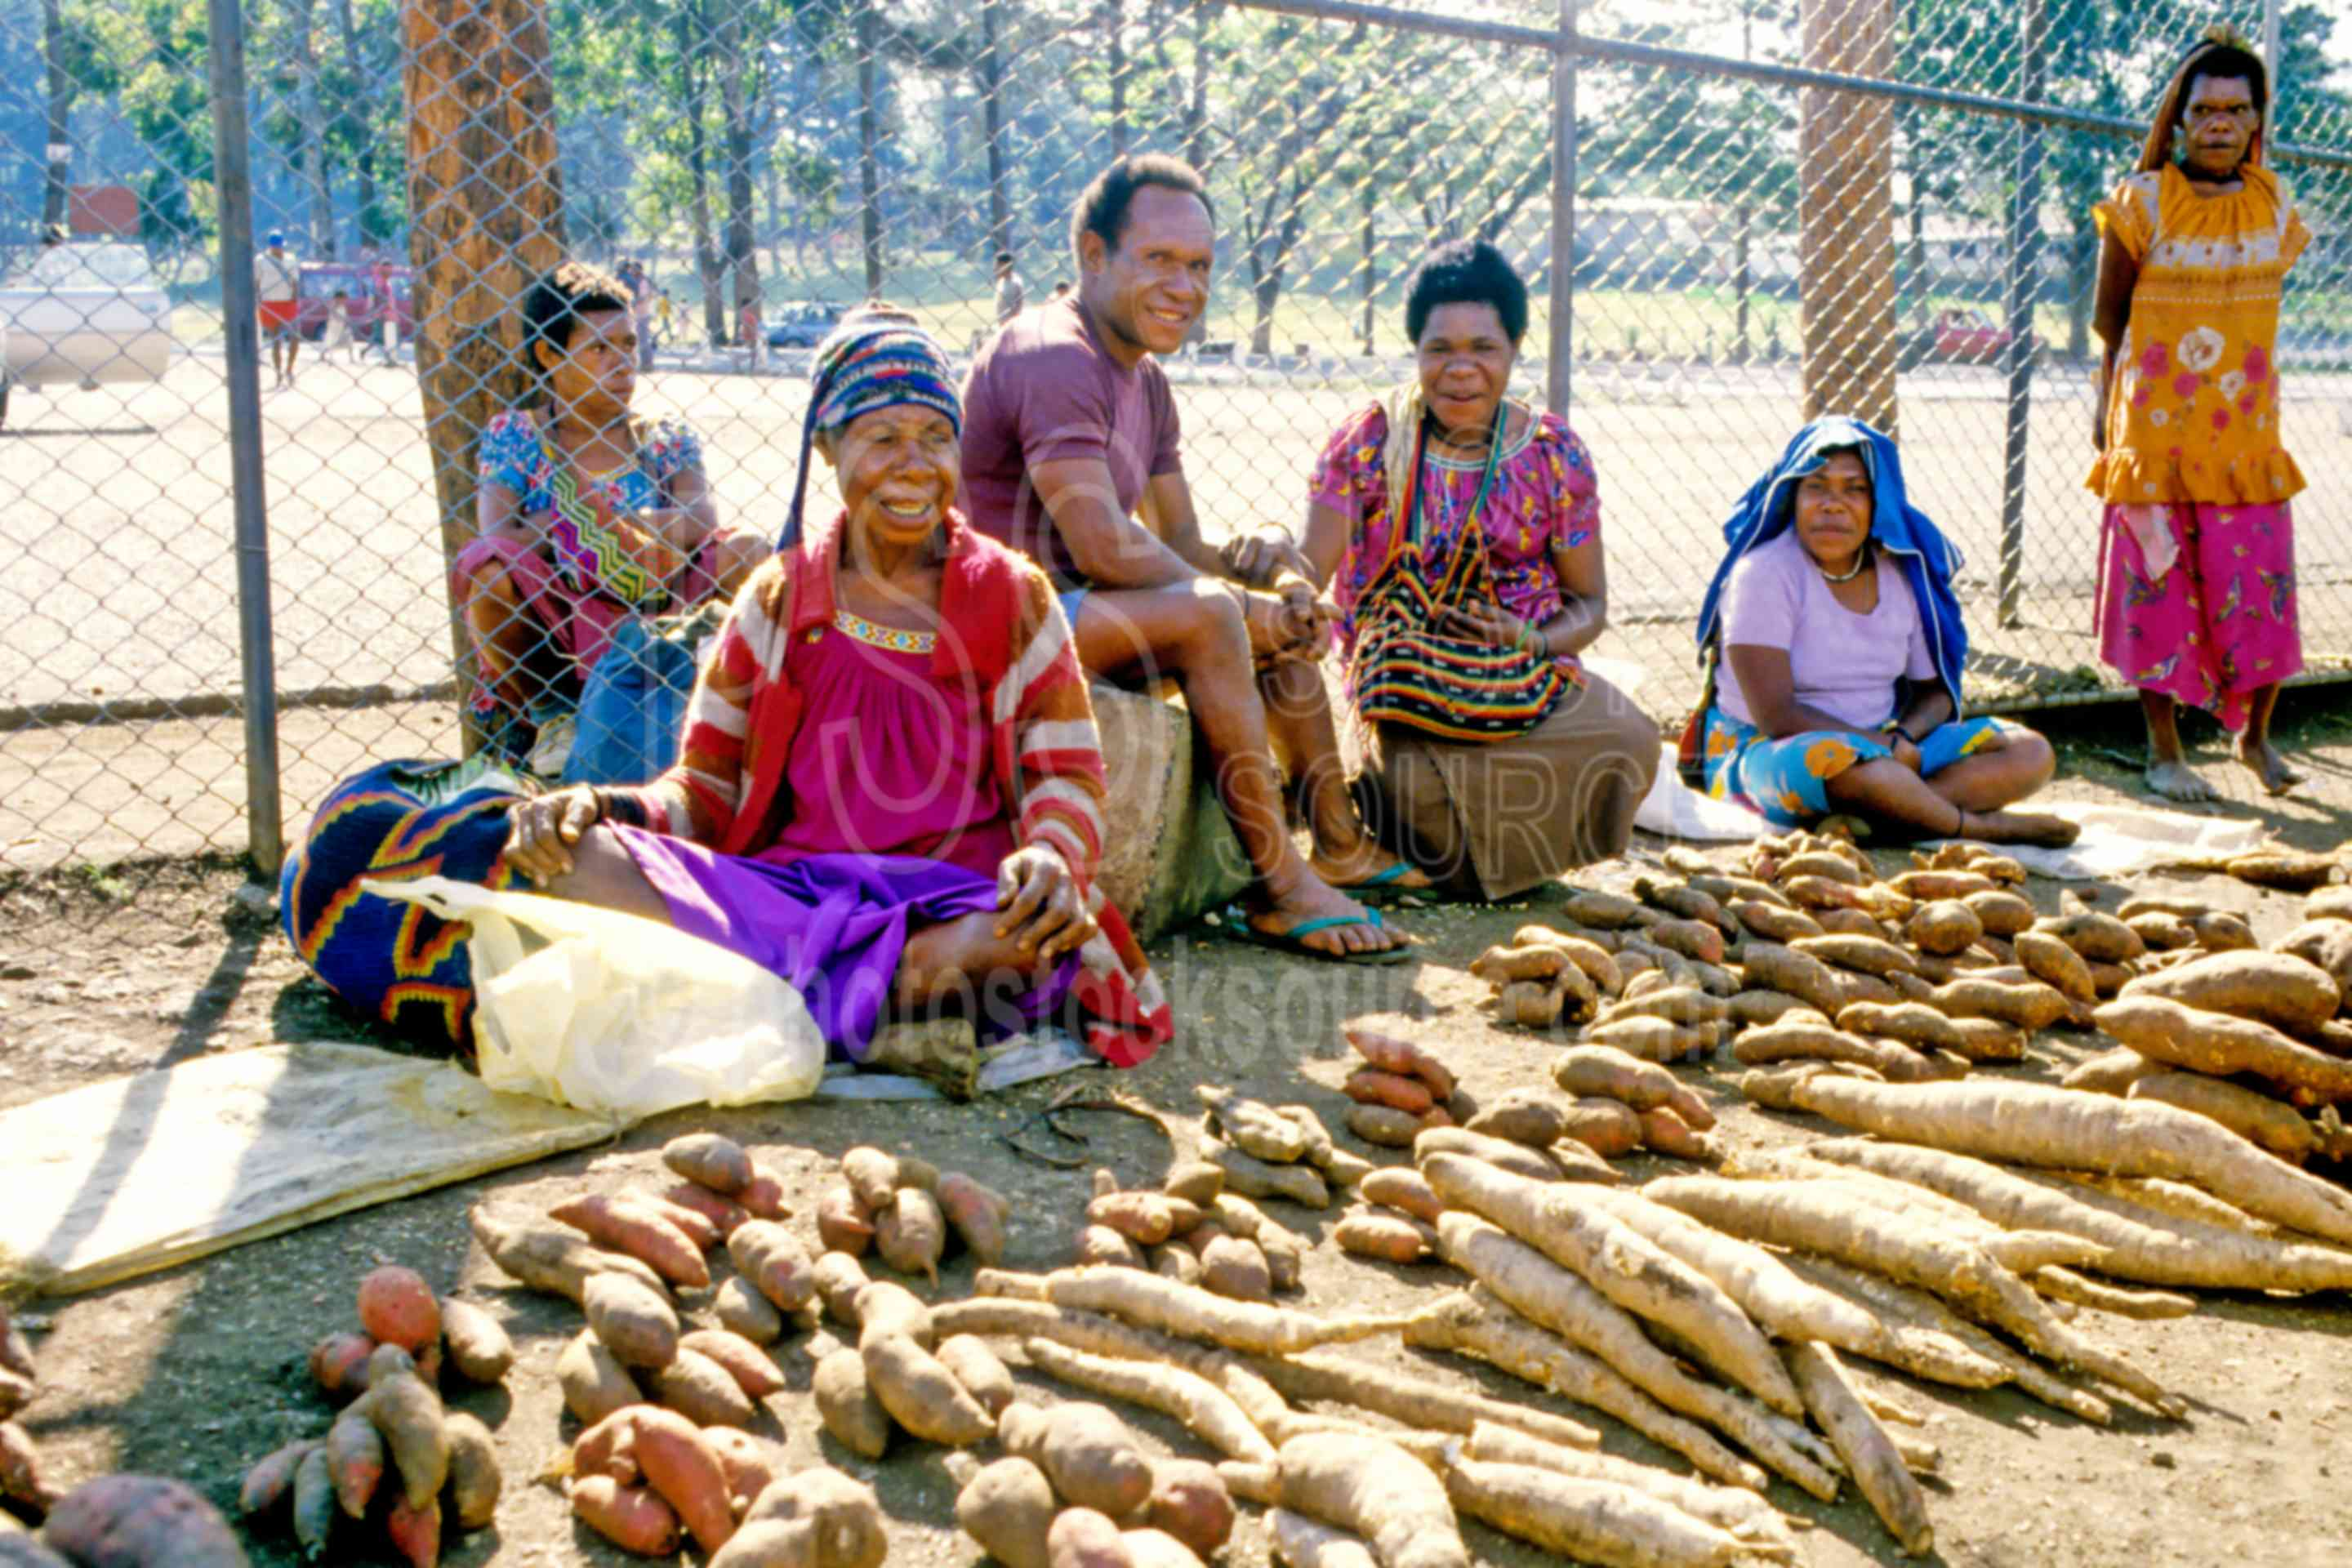 Yam Sellers,food,market,produce,seller,yams,png markets